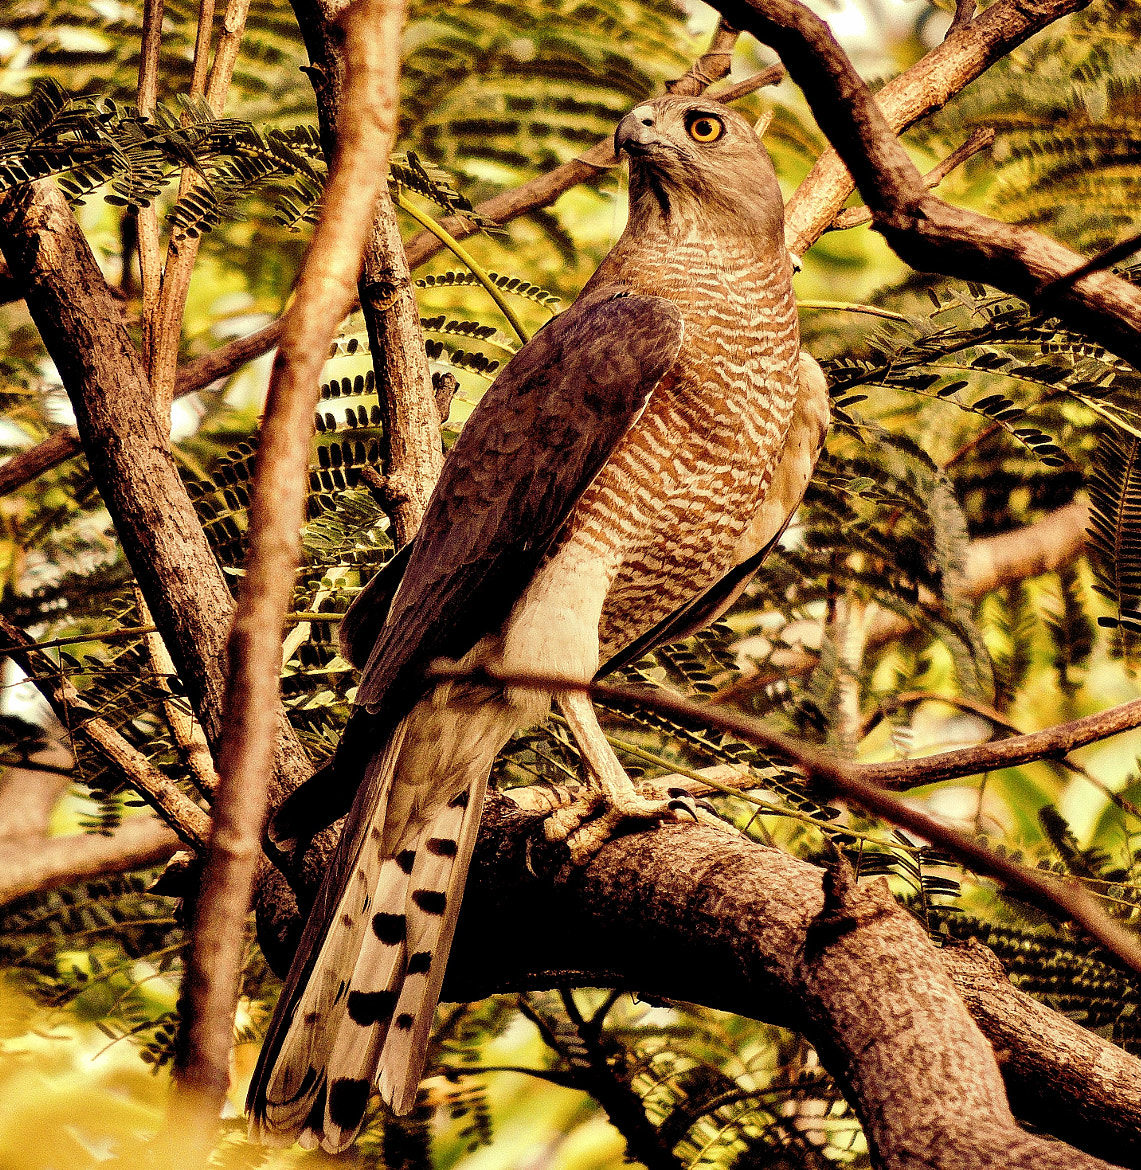 Photograph Accipiter Badius (Adult female shikra) by Ravi S R on 500px